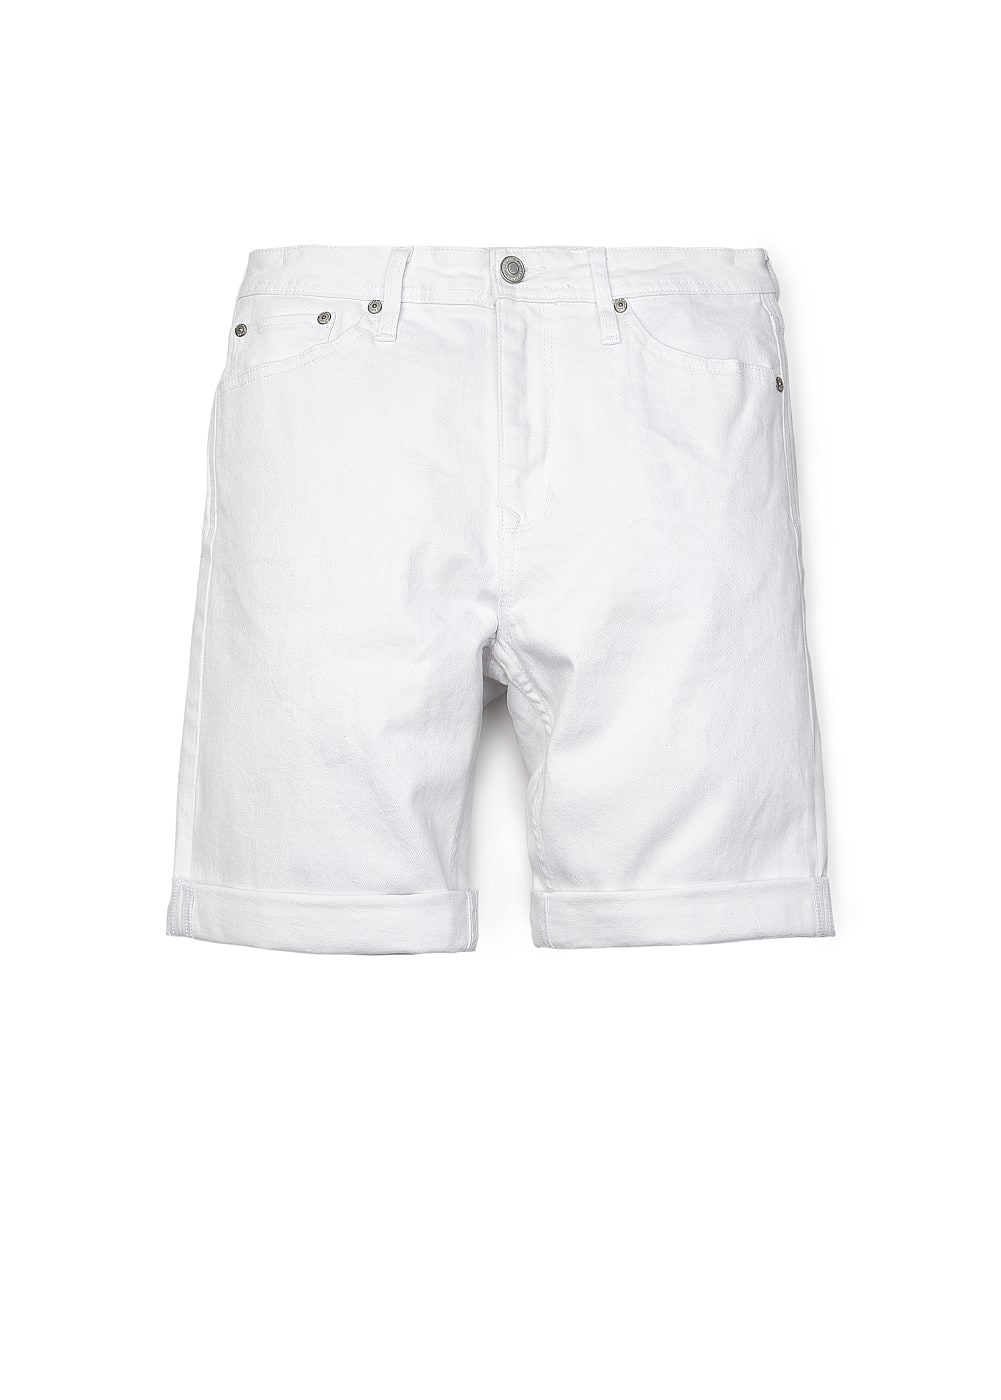 White jeans shorts mens – Global fashion jeans collection